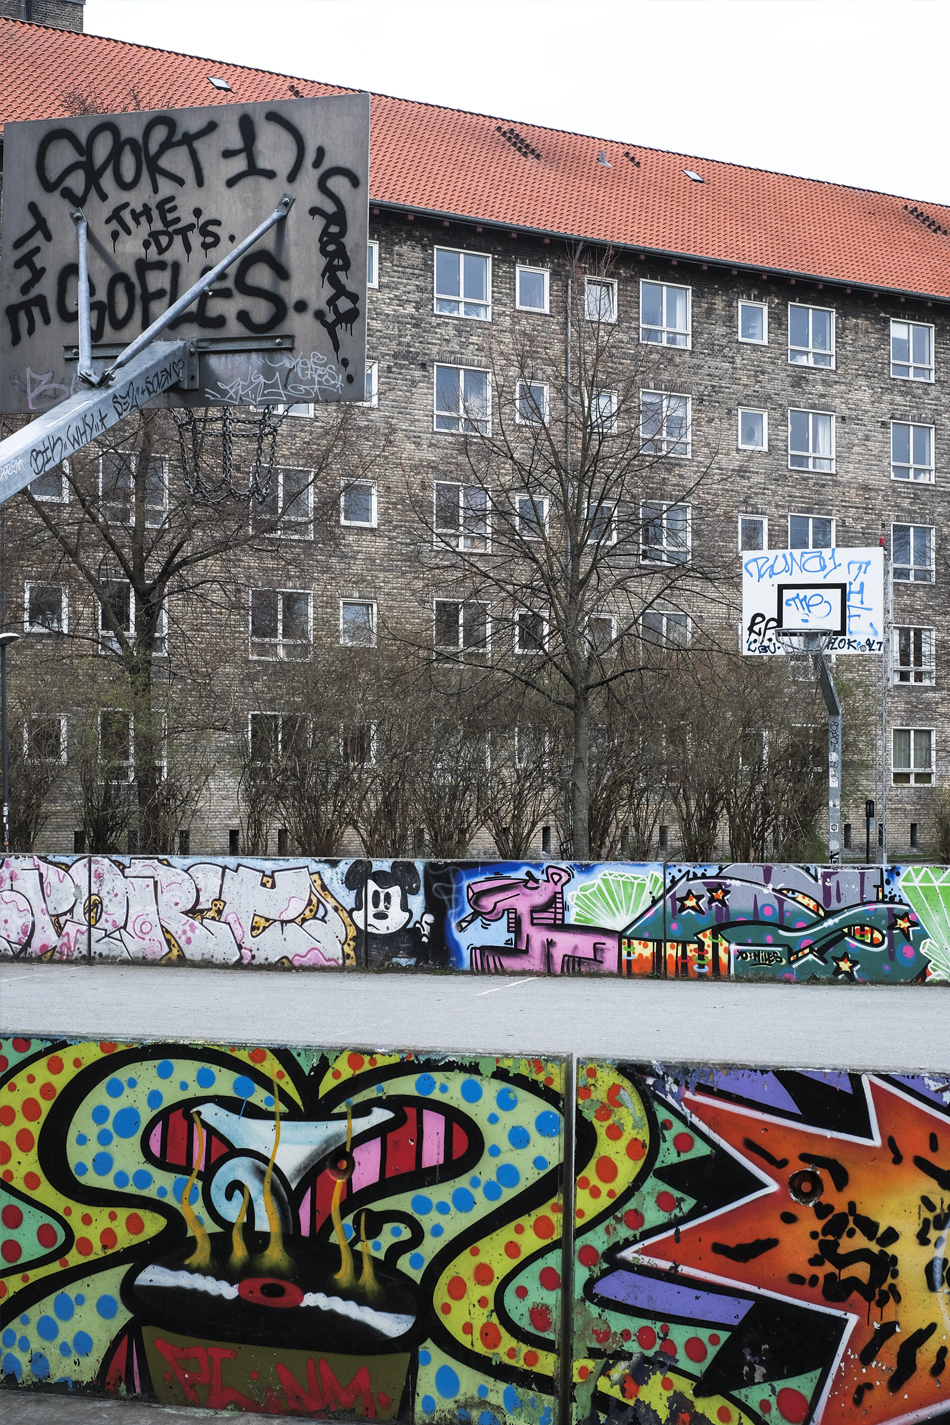 basketball court with building full of Windows behind in the Danish capital